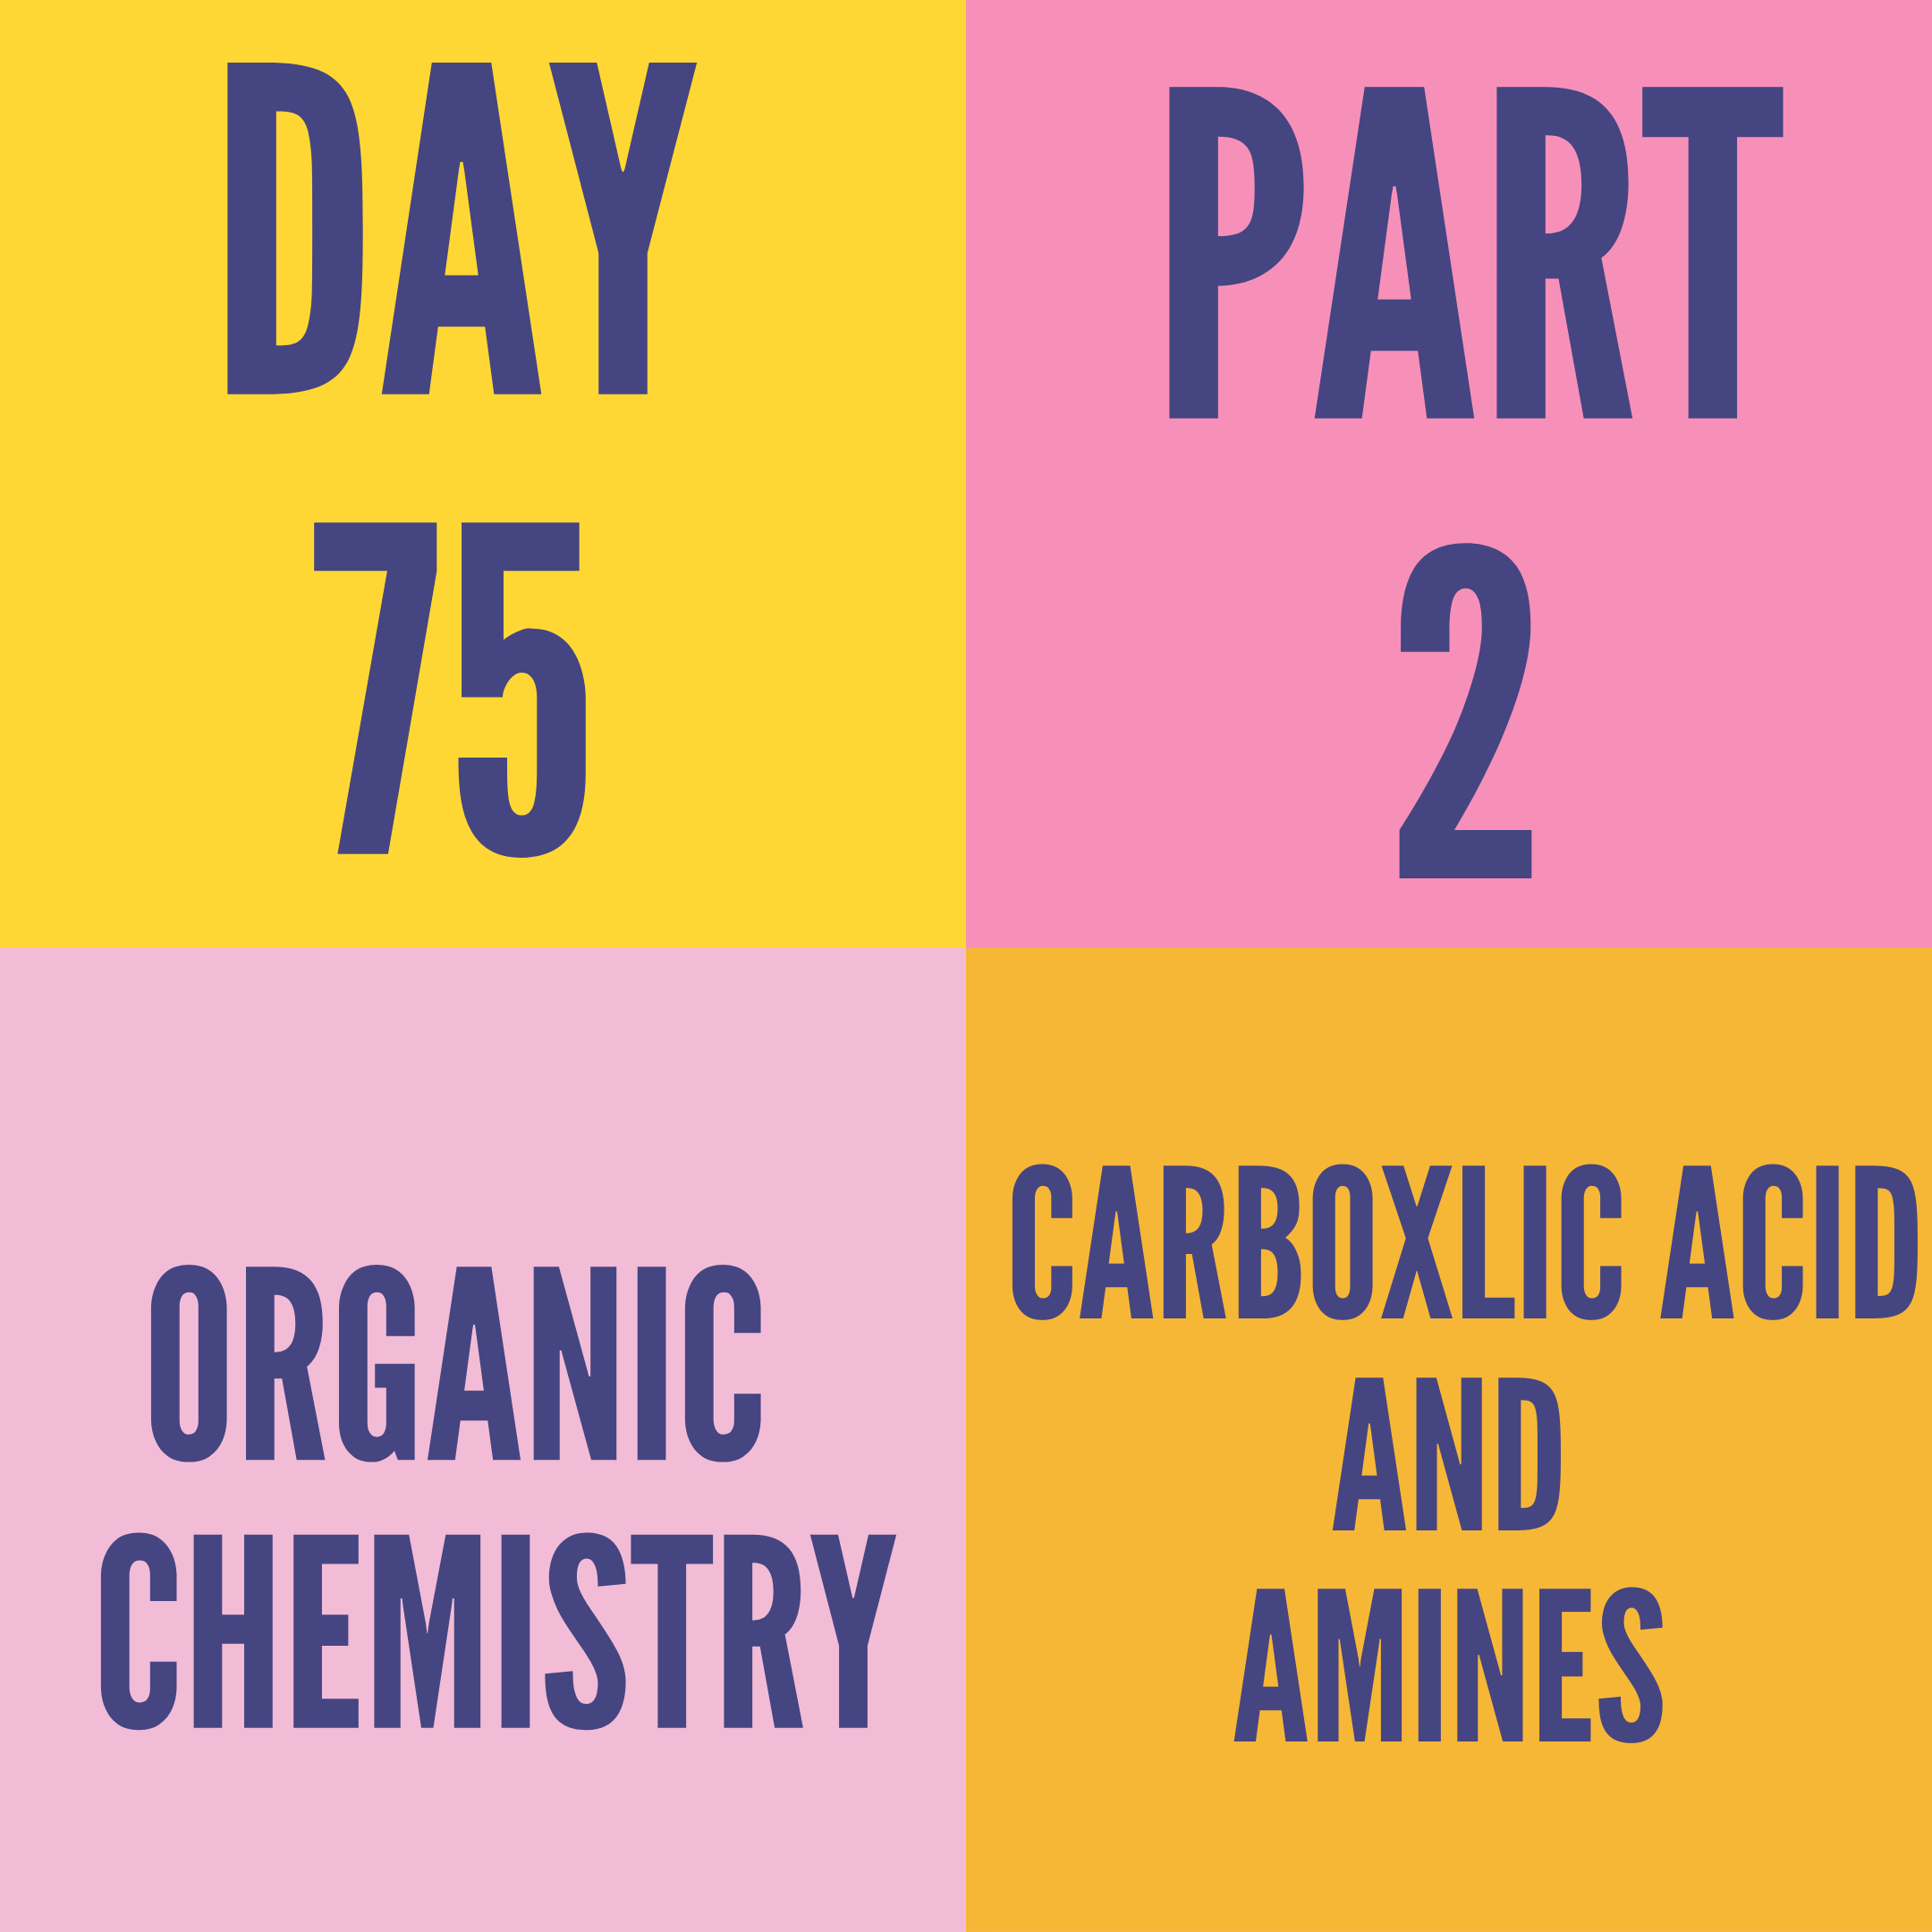 DAY-75 PART-2 CARBOXYLIC ACID AND AMINES